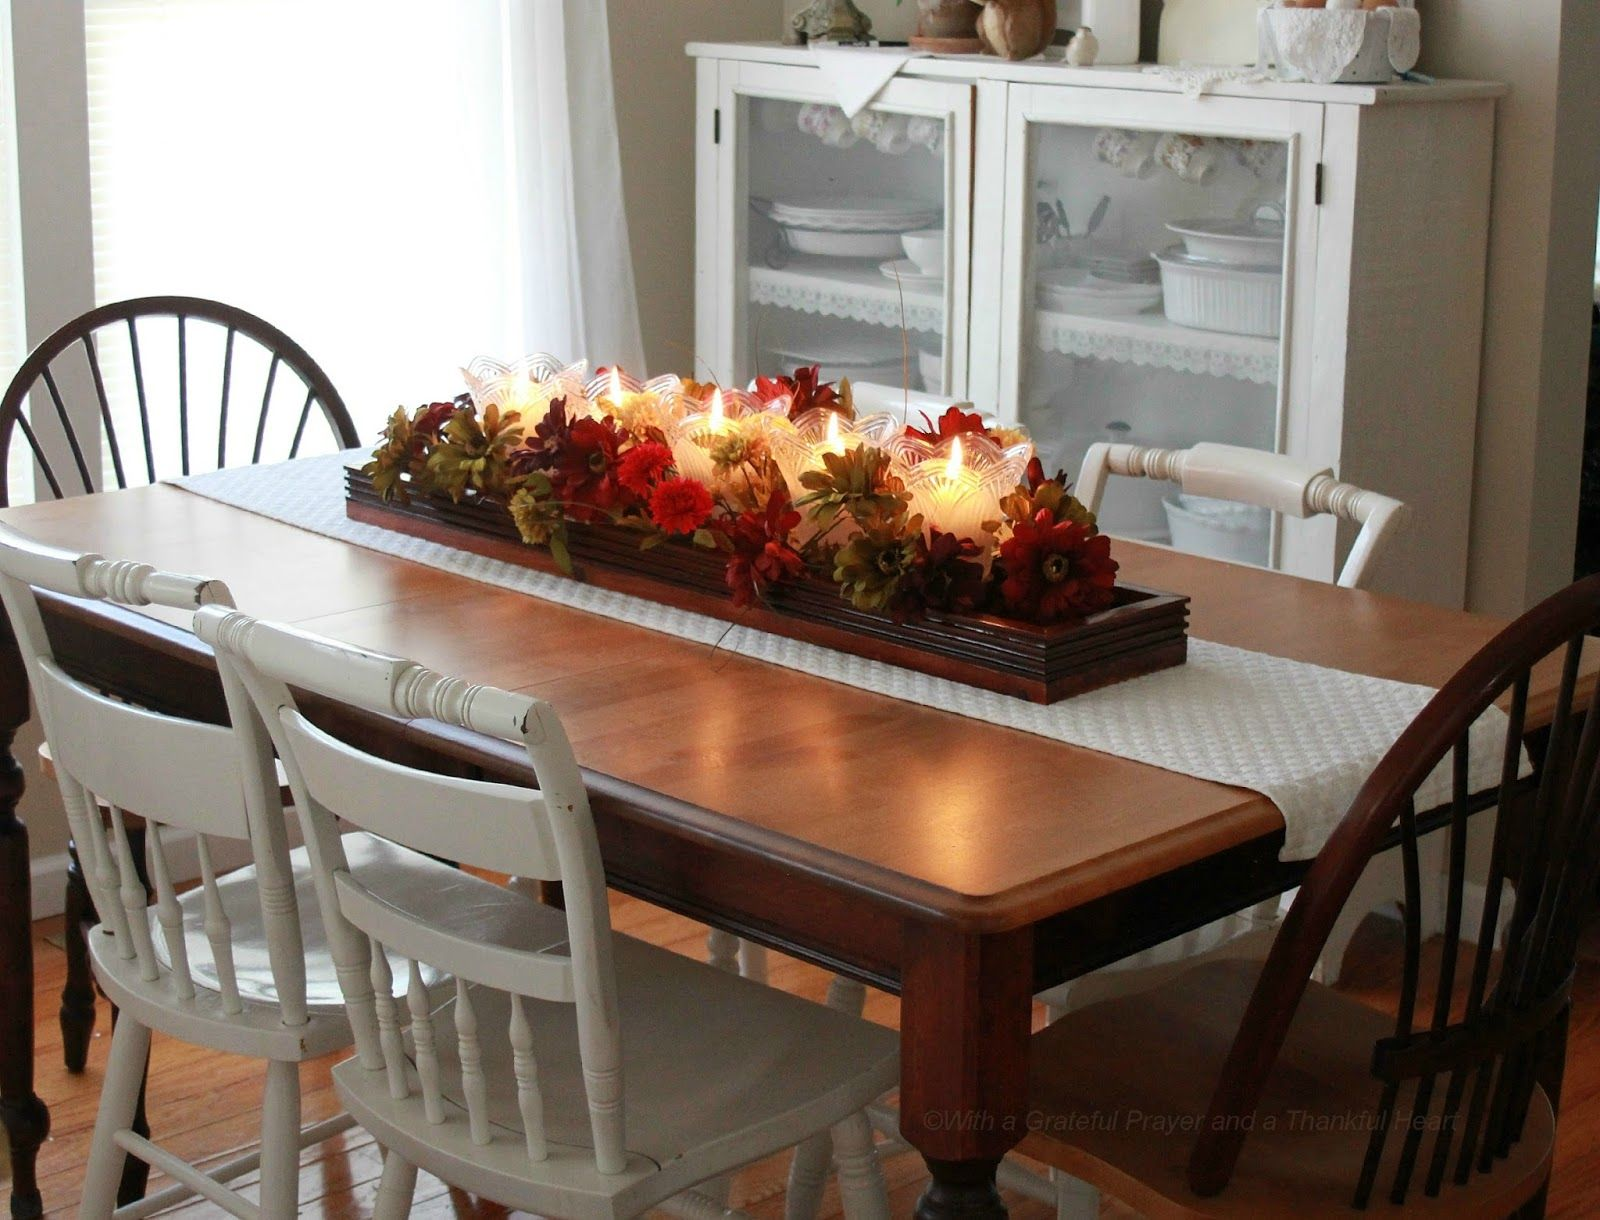 Kitchen Table Centerpiece Table Centerpiece From Re Purposed Light Globes Kitchen